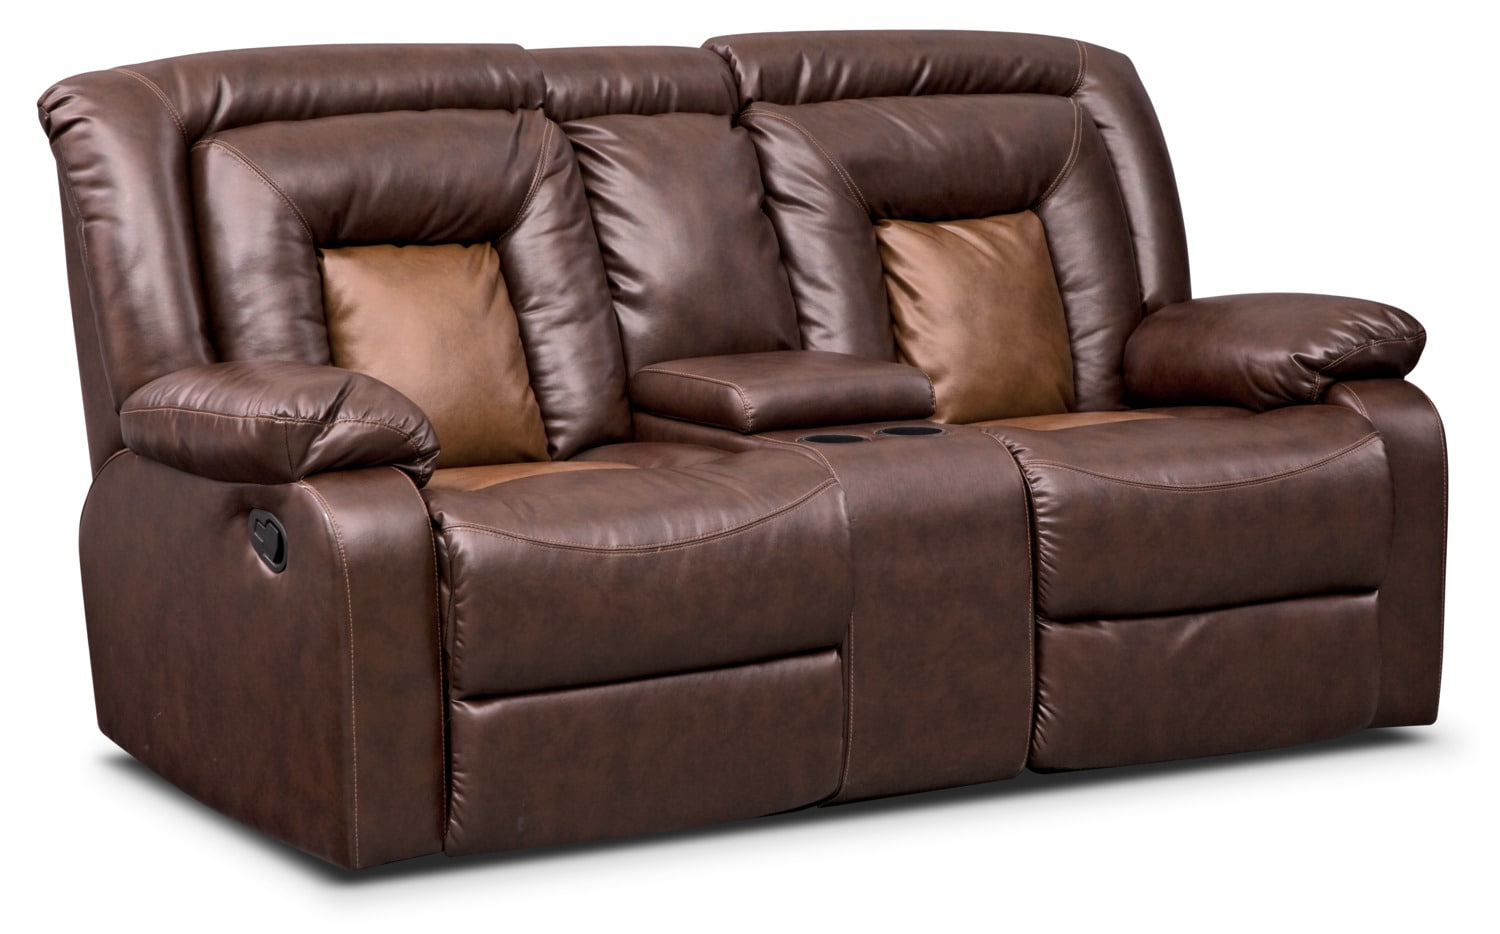 Mustang Dual-Reclining Loveseat With Console